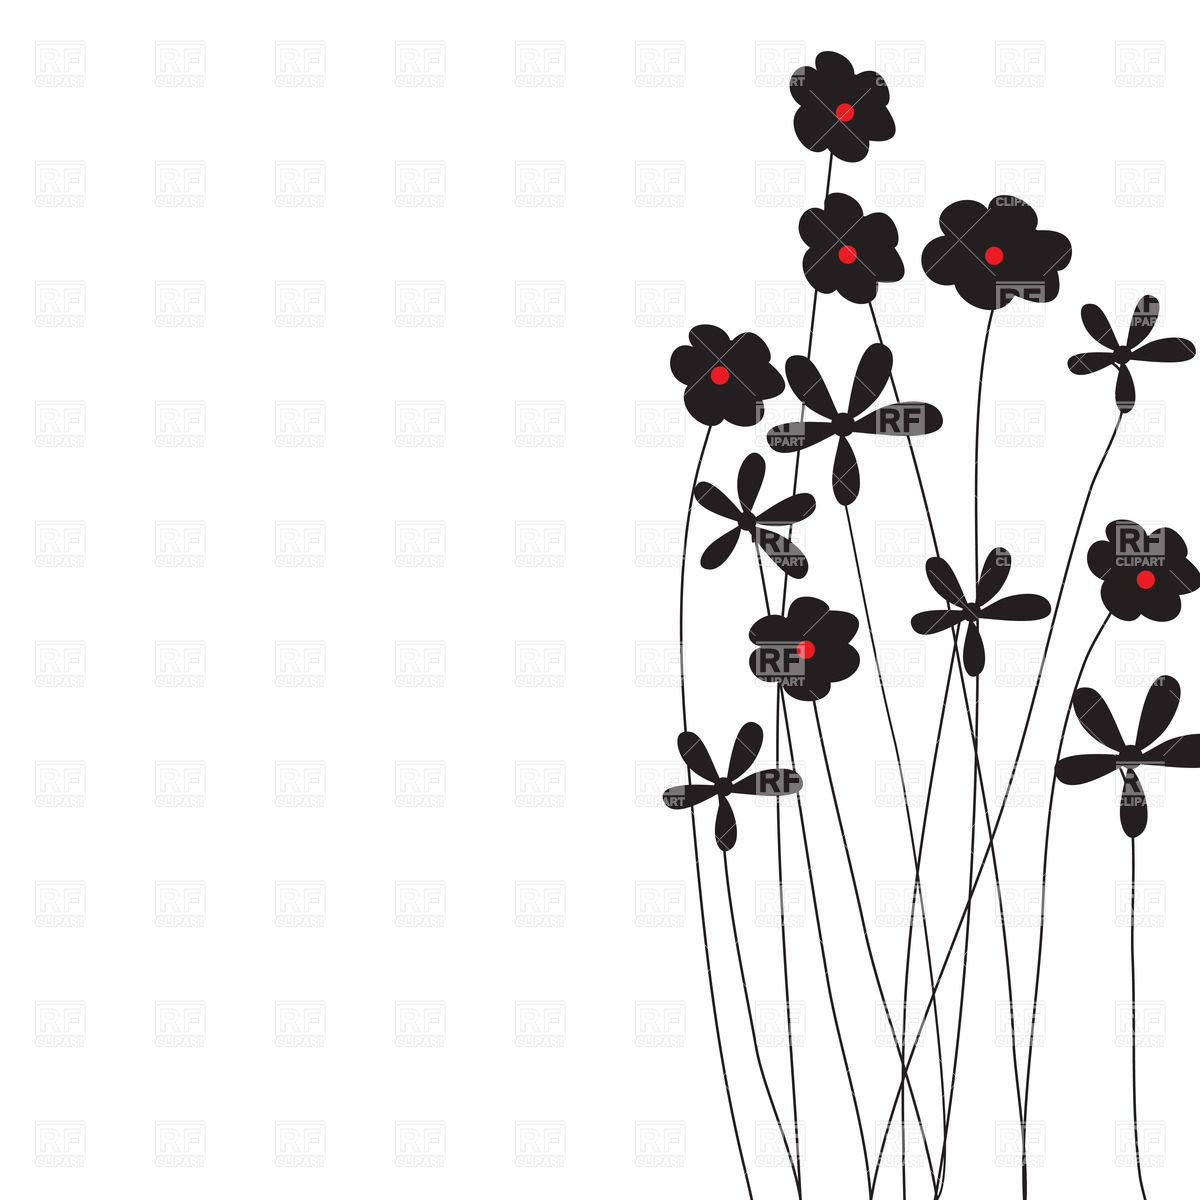 1200x1200 Silhouettes Of Simple Wildflowers Vector Image Vector Artwork Of